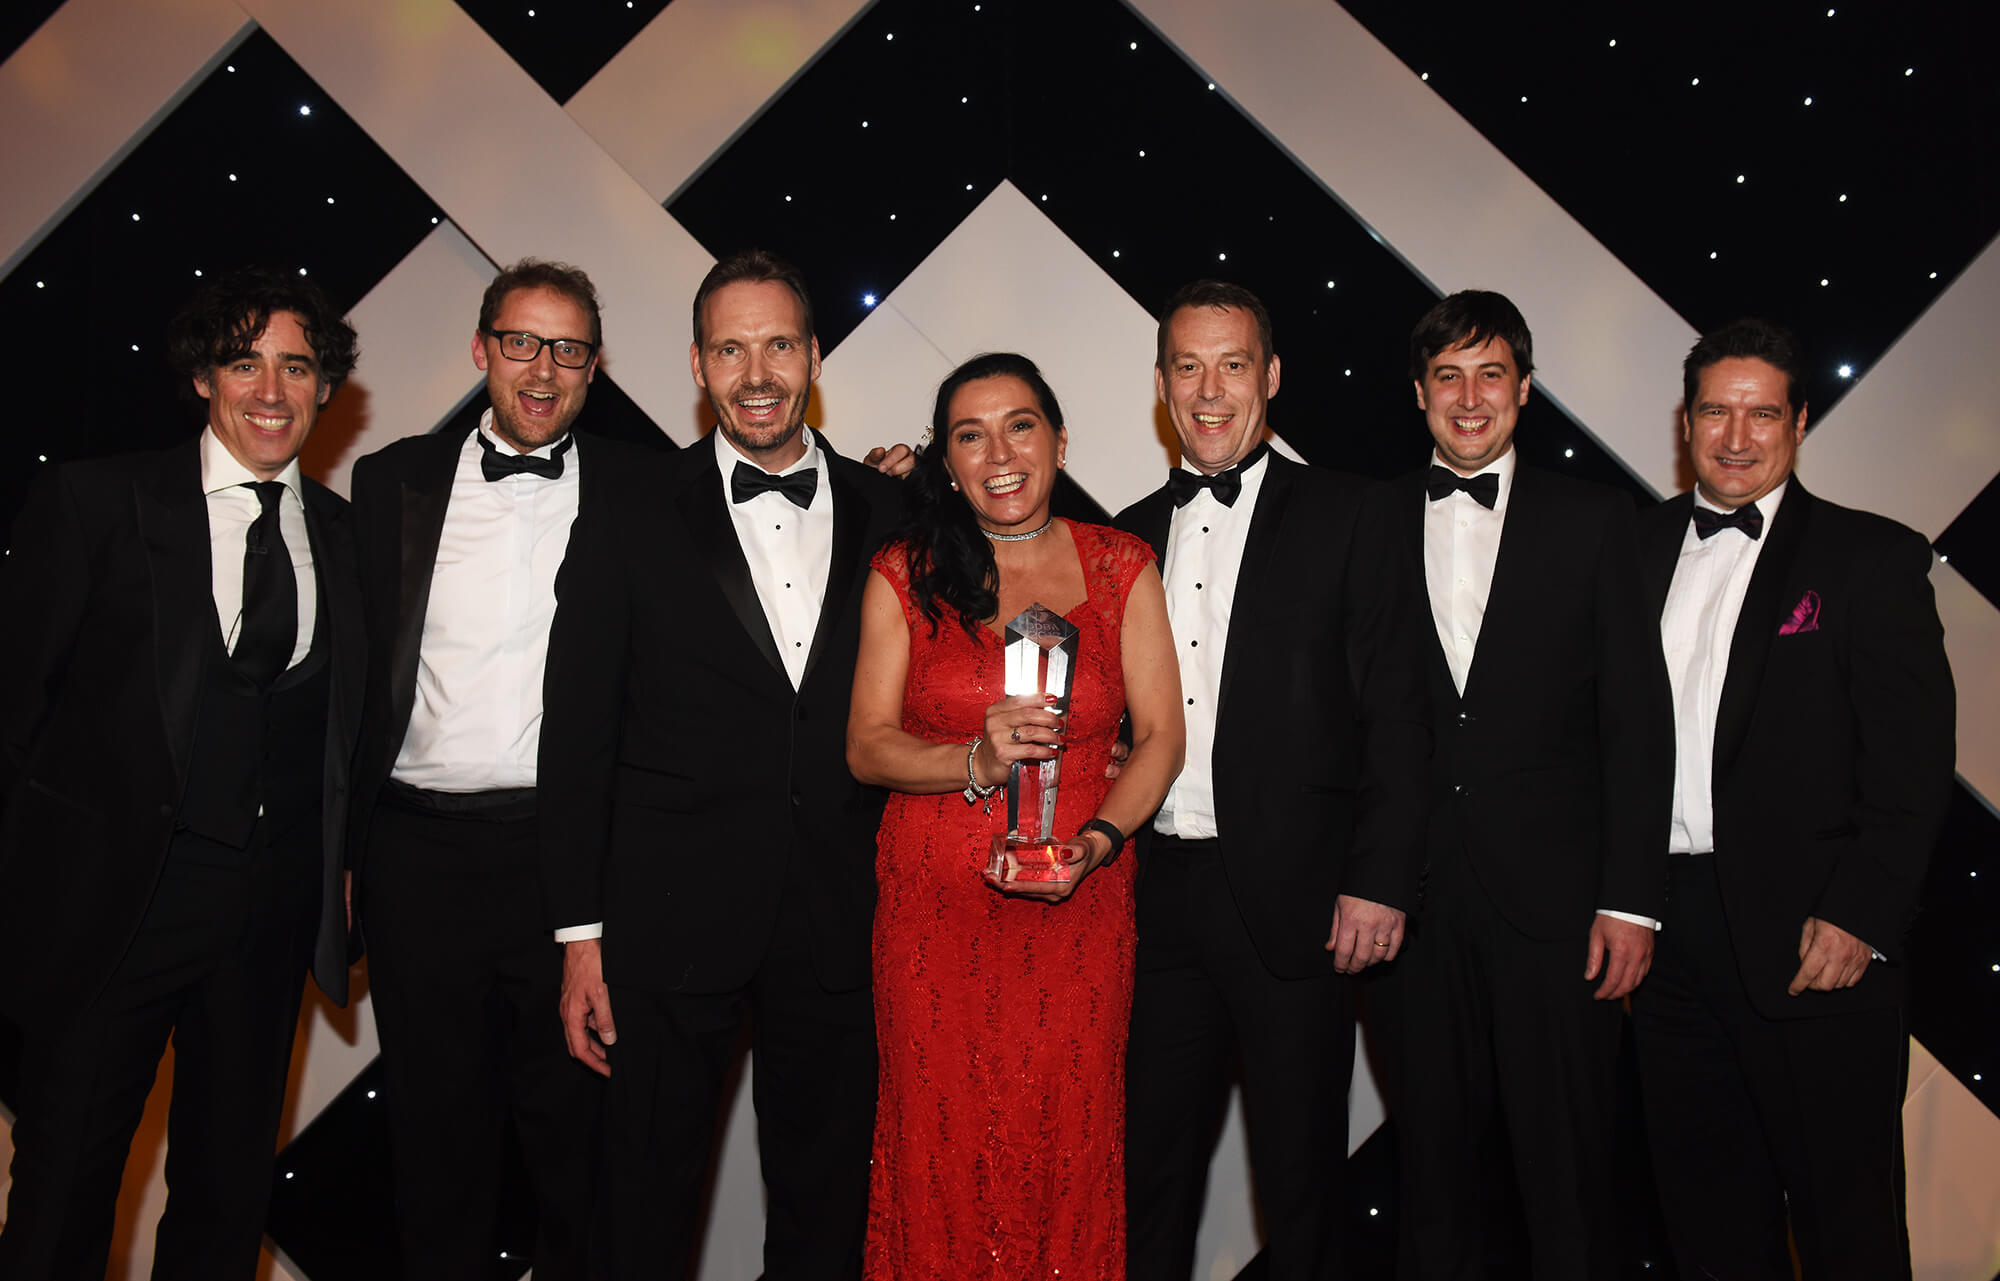 Cova Security Gates receive Gatwick Diamond Business Award for Manufacturing Business of the Year 2017. Pictured (left to right): Stephen Mangan, writer, actor and presenter of the Awards. From Cova Security Gates, Jon Trott, Compliance Manager; Adrian Lewis, Commercial Director; Karen Deacon, Marketing Manager; Paul Mutter, International Account Manager; Kevin Conway, Production Manager. From asb Law LLP, Neil Gardner,